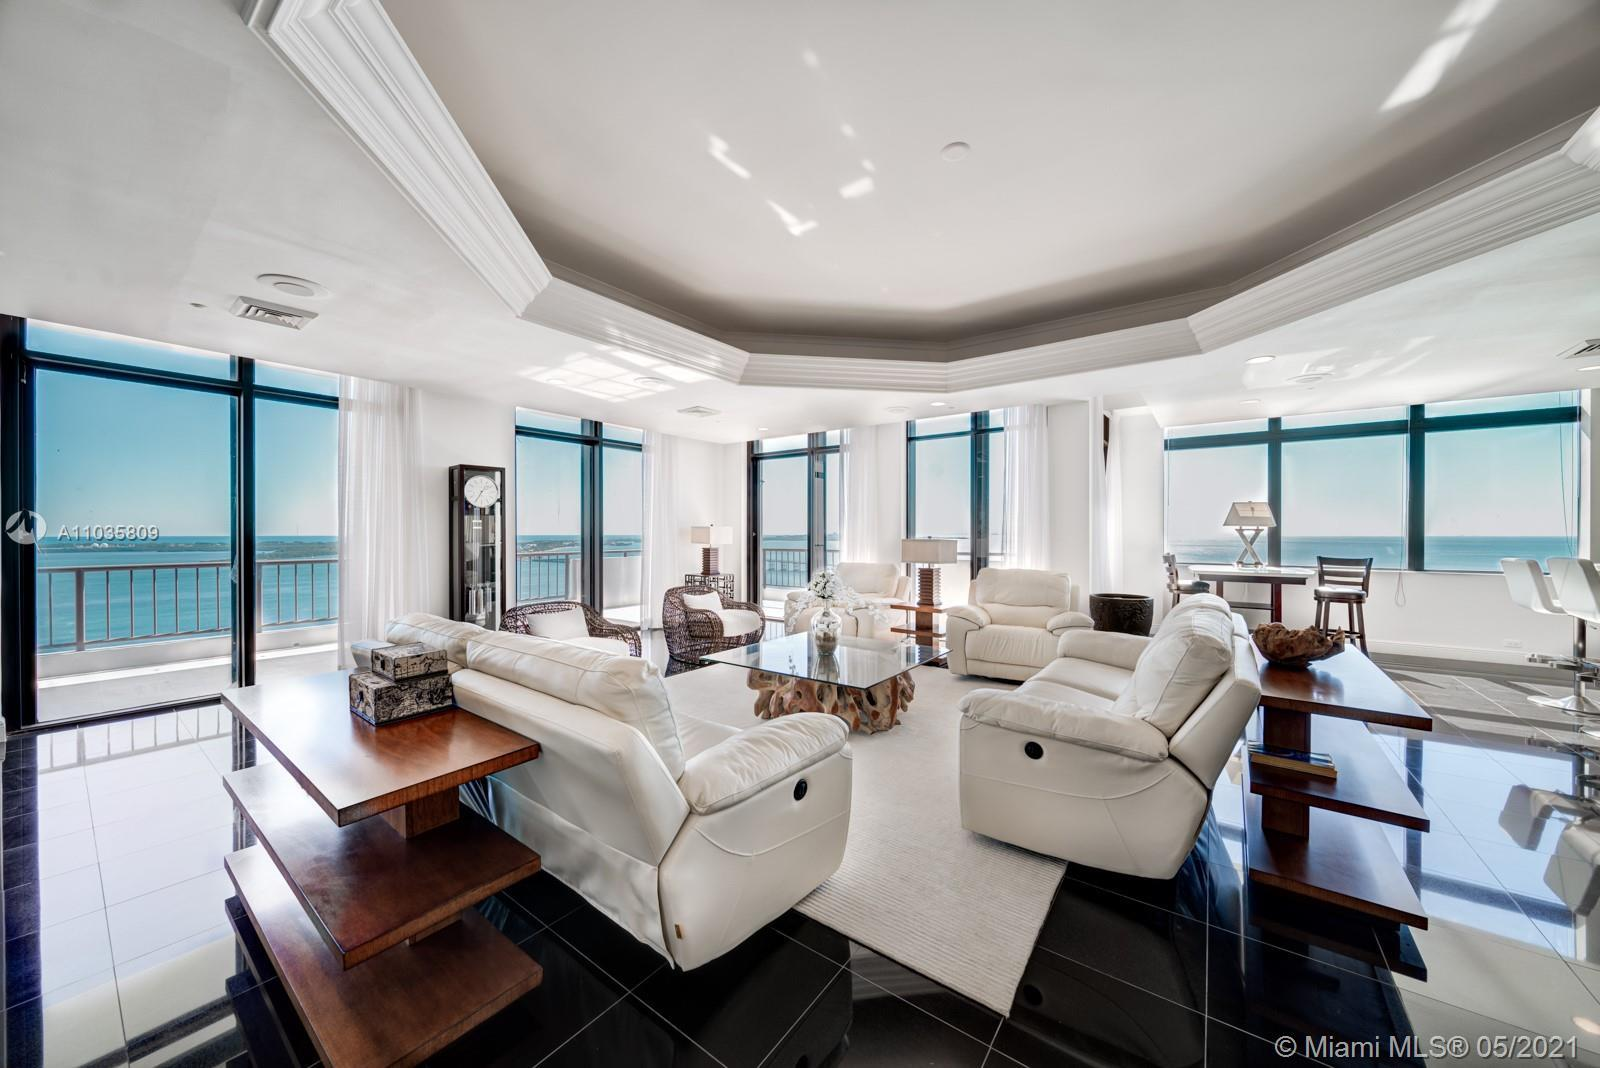 EXTRAORDINARY 7280 sf apartment facing Brickell Ave and Biscayne Bay. This 6 Bedroom & 6.5 Baths wit